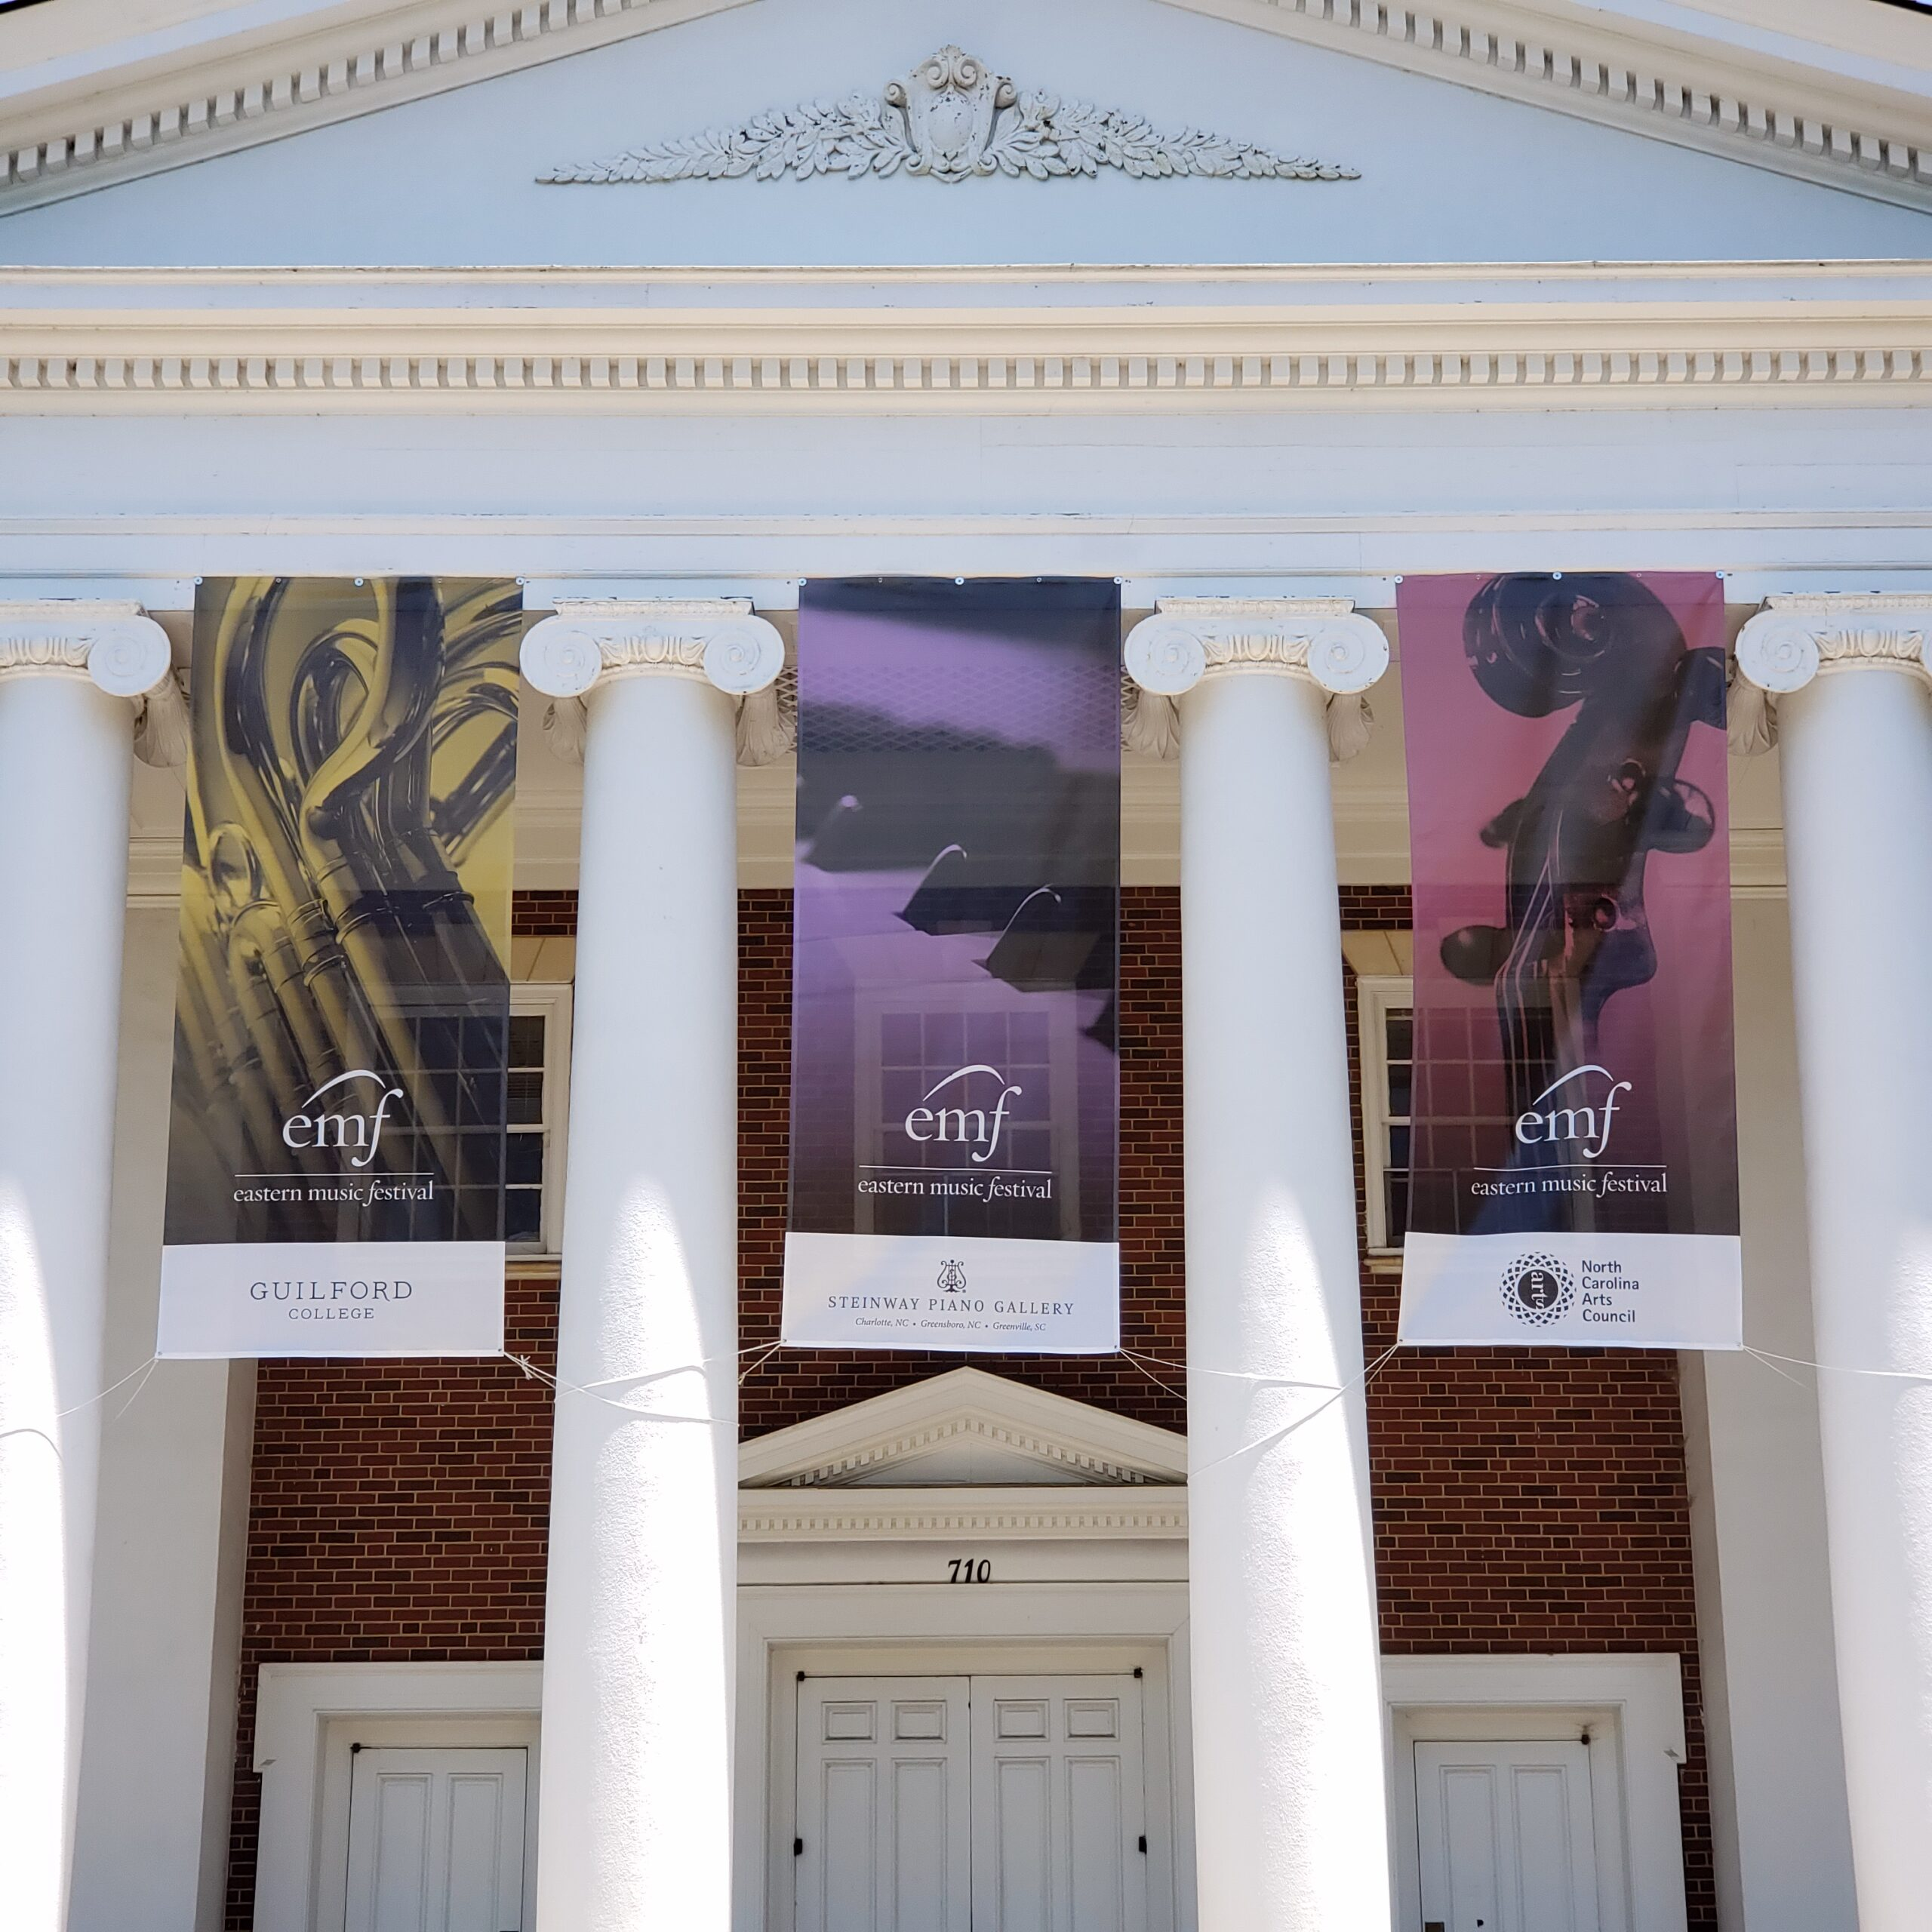 exterior doric white columns and three colorful EMF banners